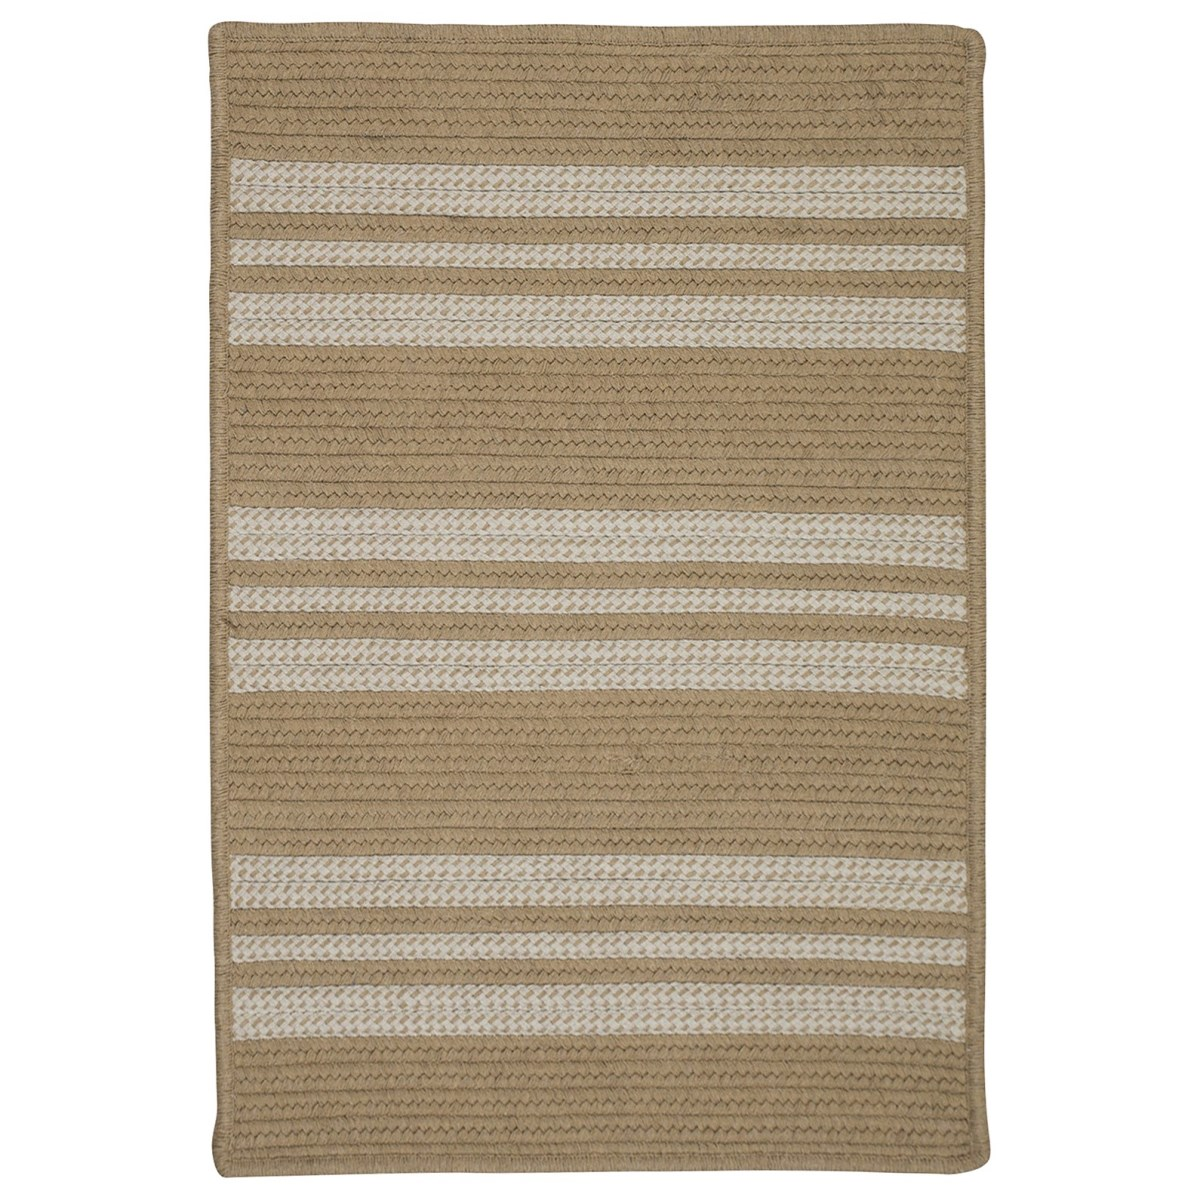 Sunbrella Southport Stripe Wheat Outdoor Braided Rectangular Rugs